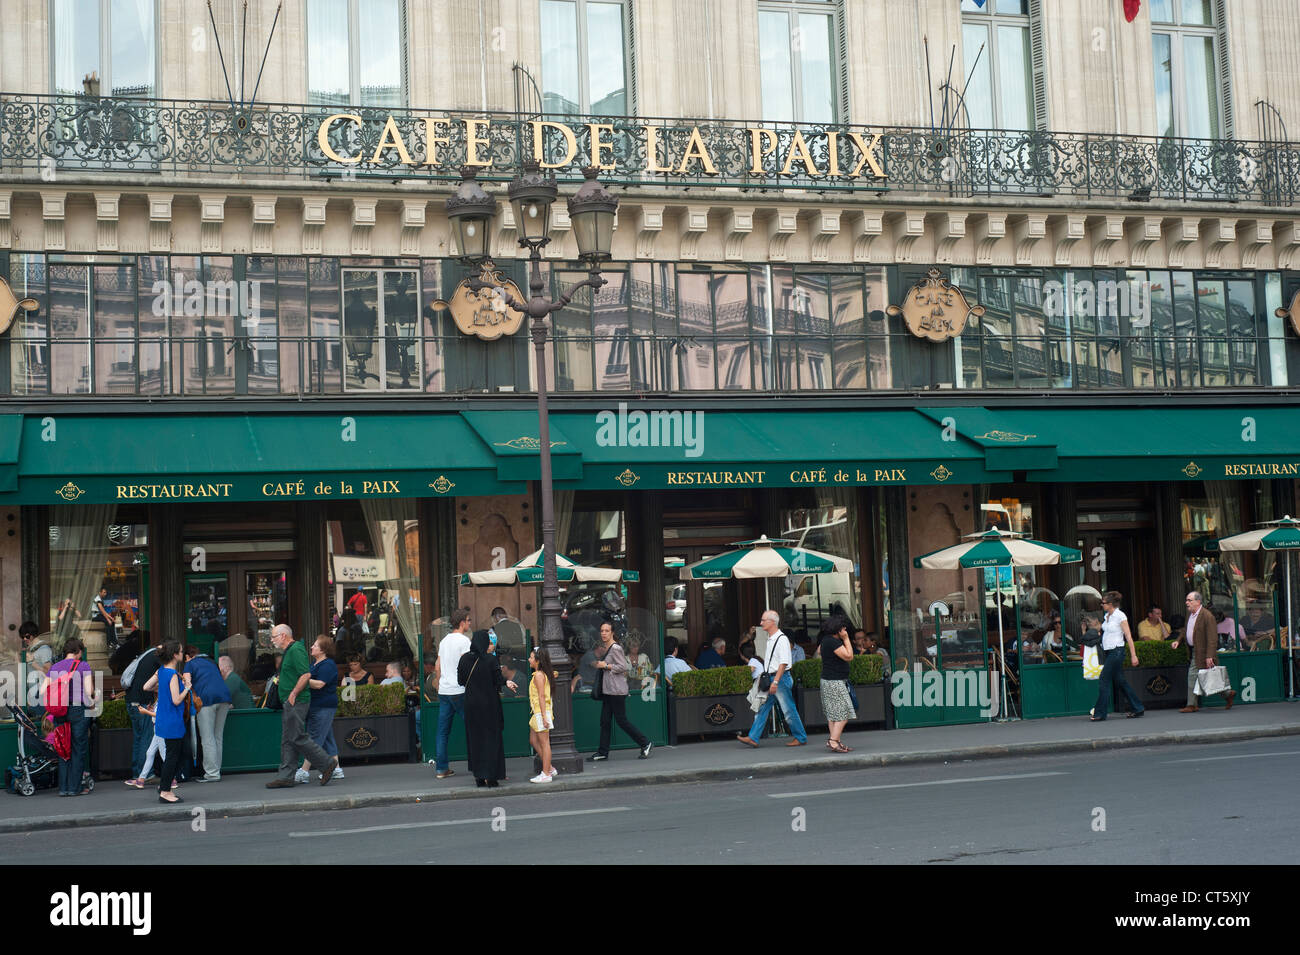 Cafe De Paris Theatre